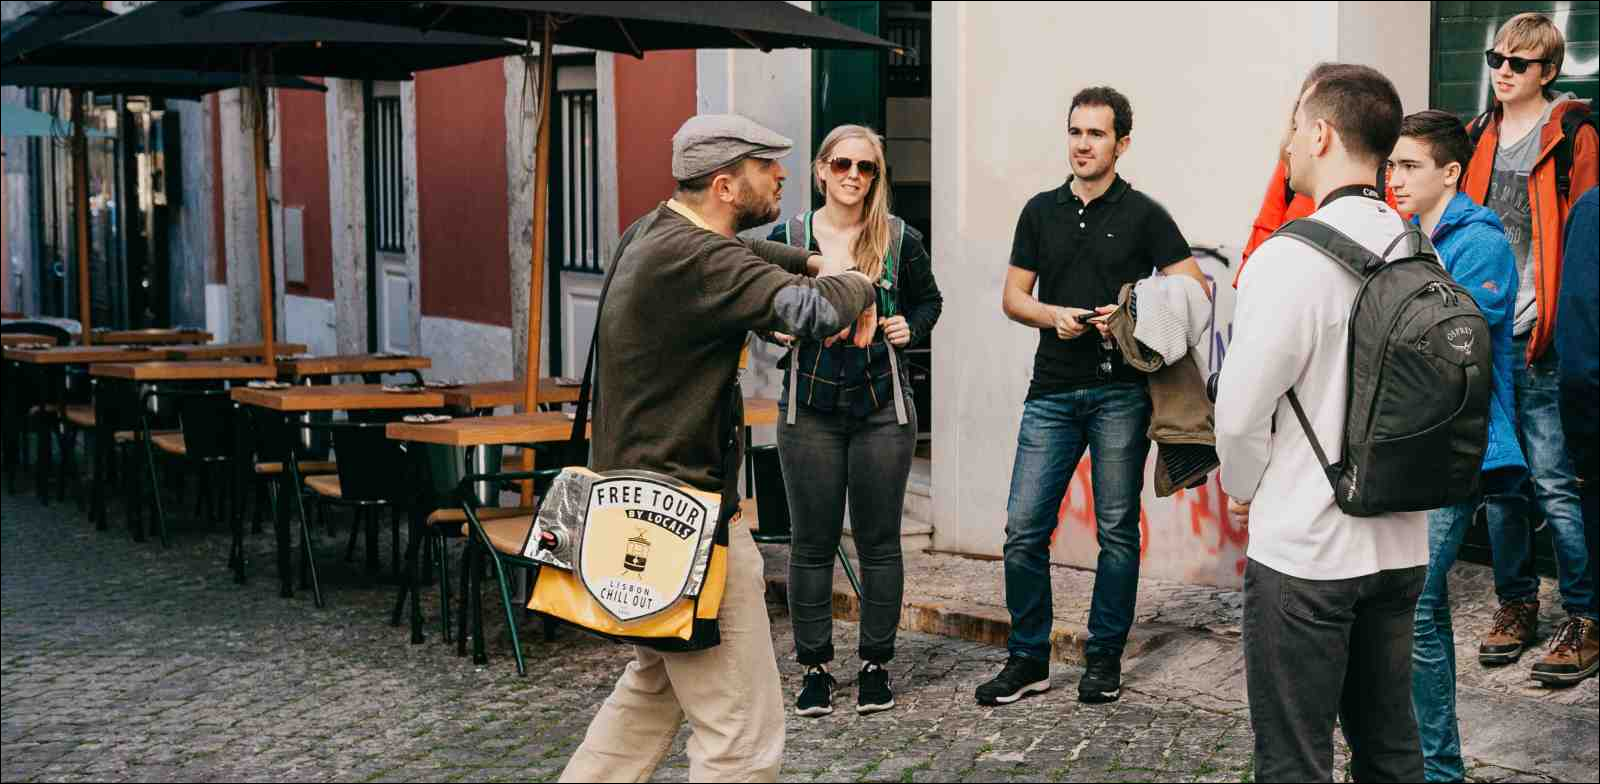 local guide in Lisbon gesturing to tourists